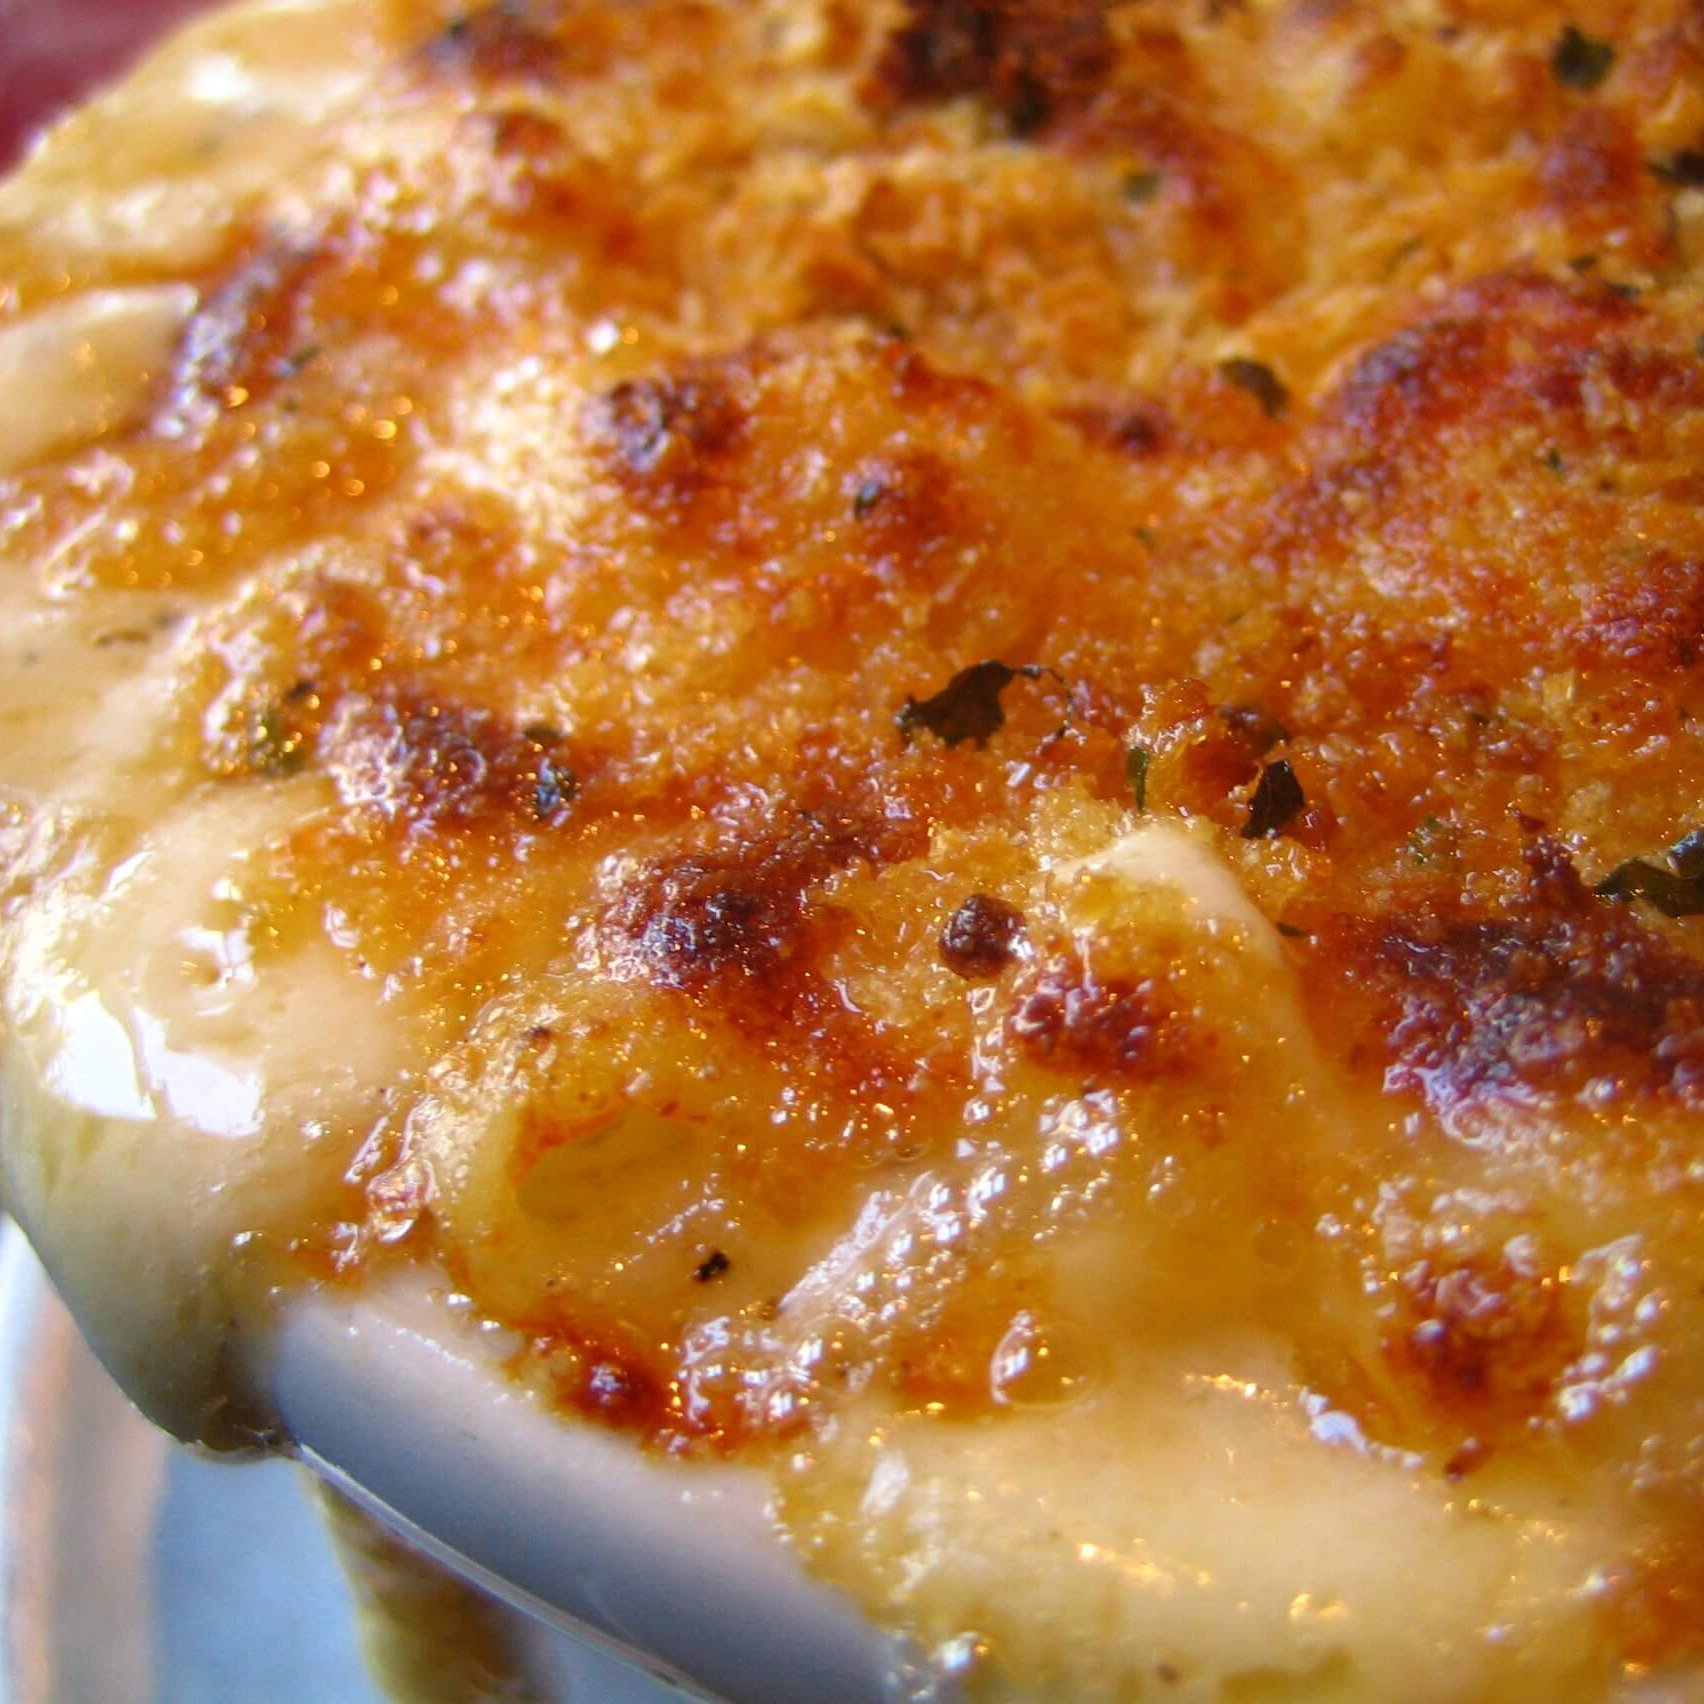 Flickr_Rick_349850413--Macaroni_and_Cheese_Closeup